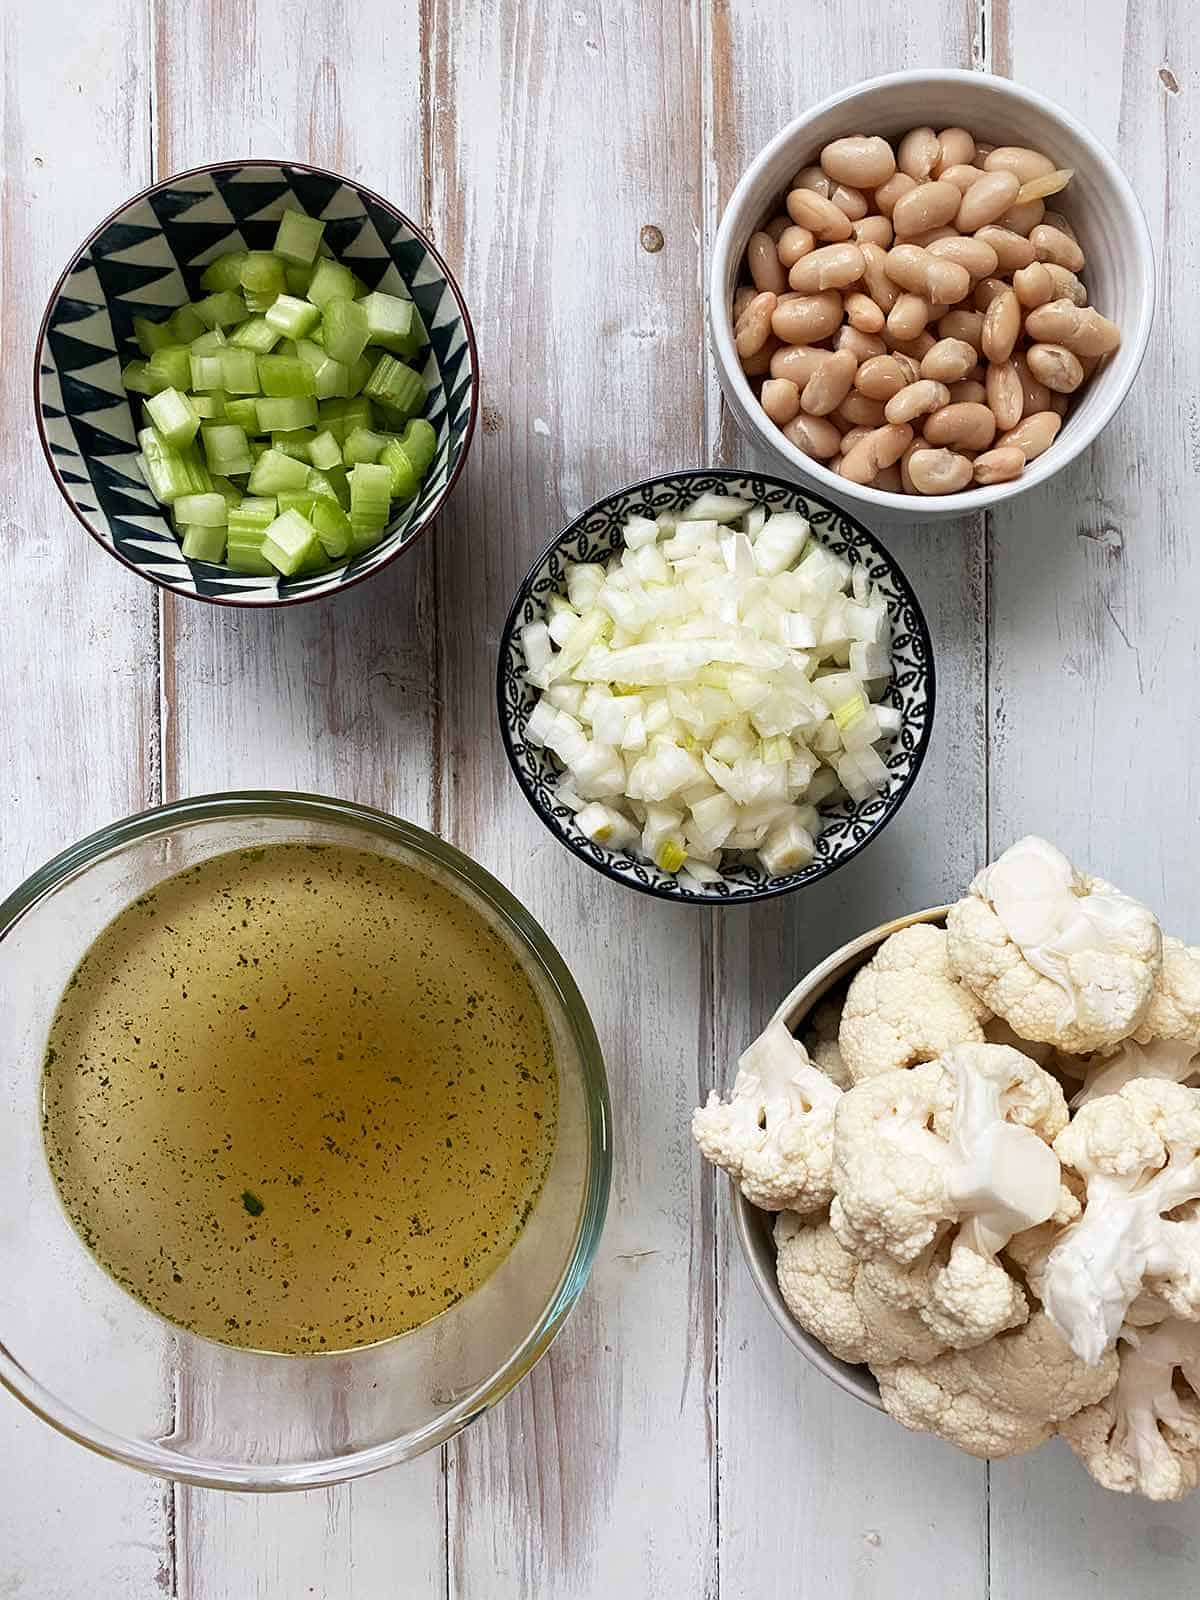 Ingredients for weight watchers white bean soup